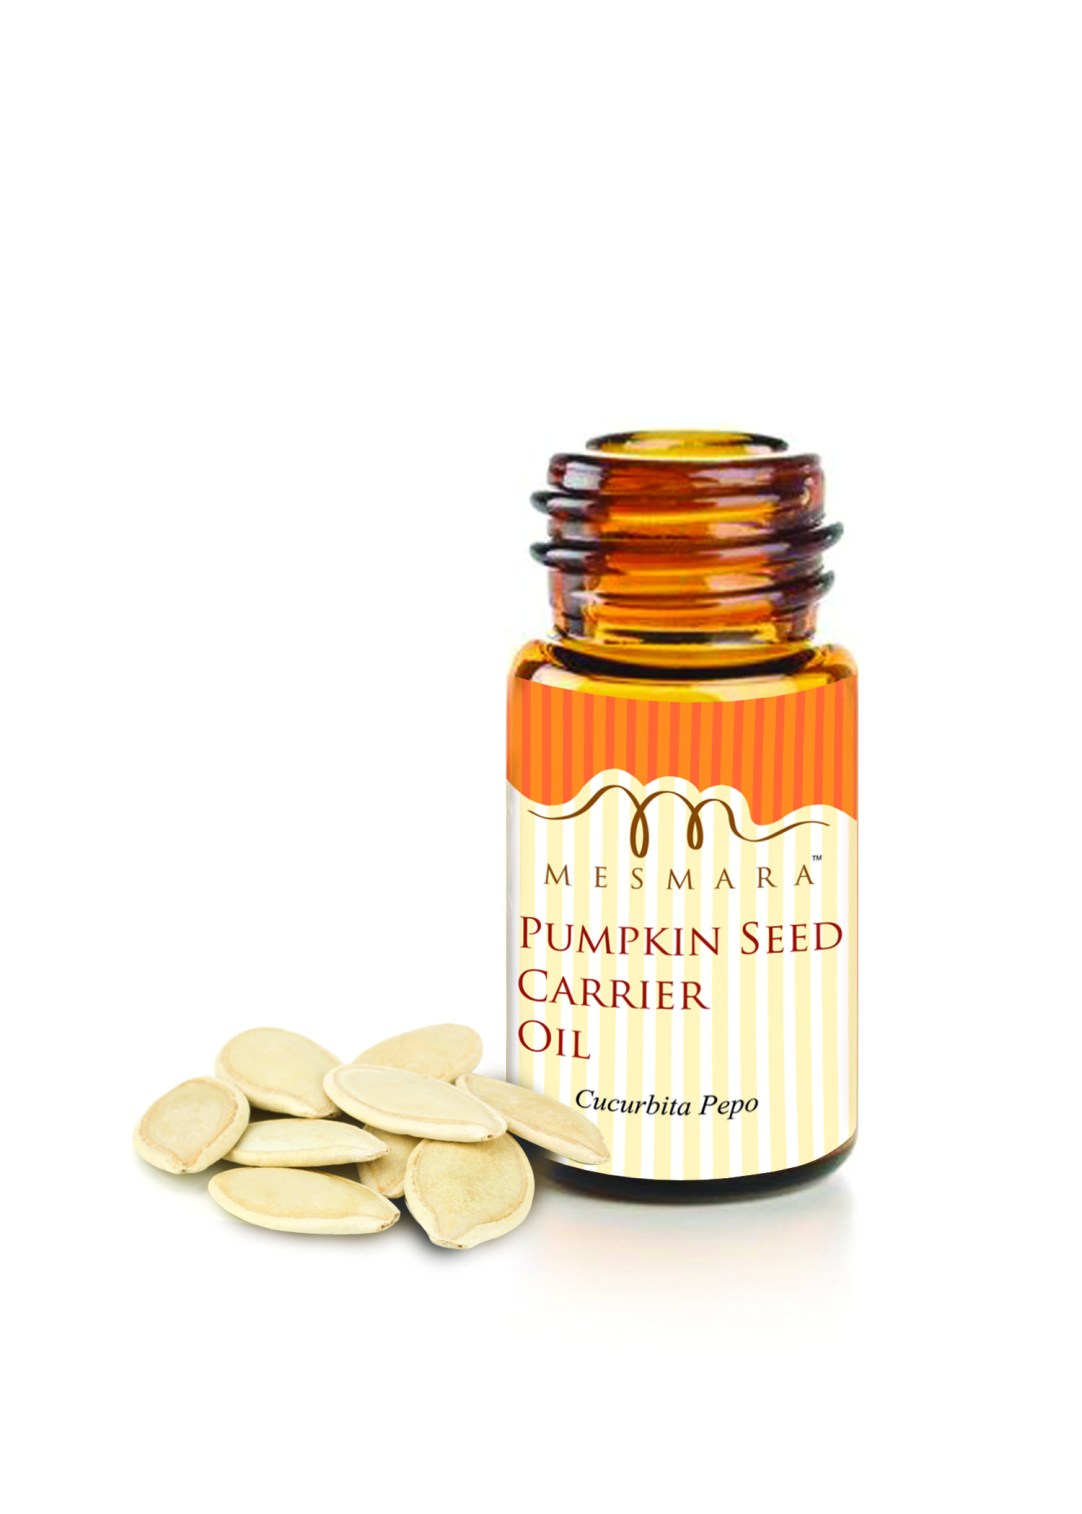 pumpkin seed oil bottle